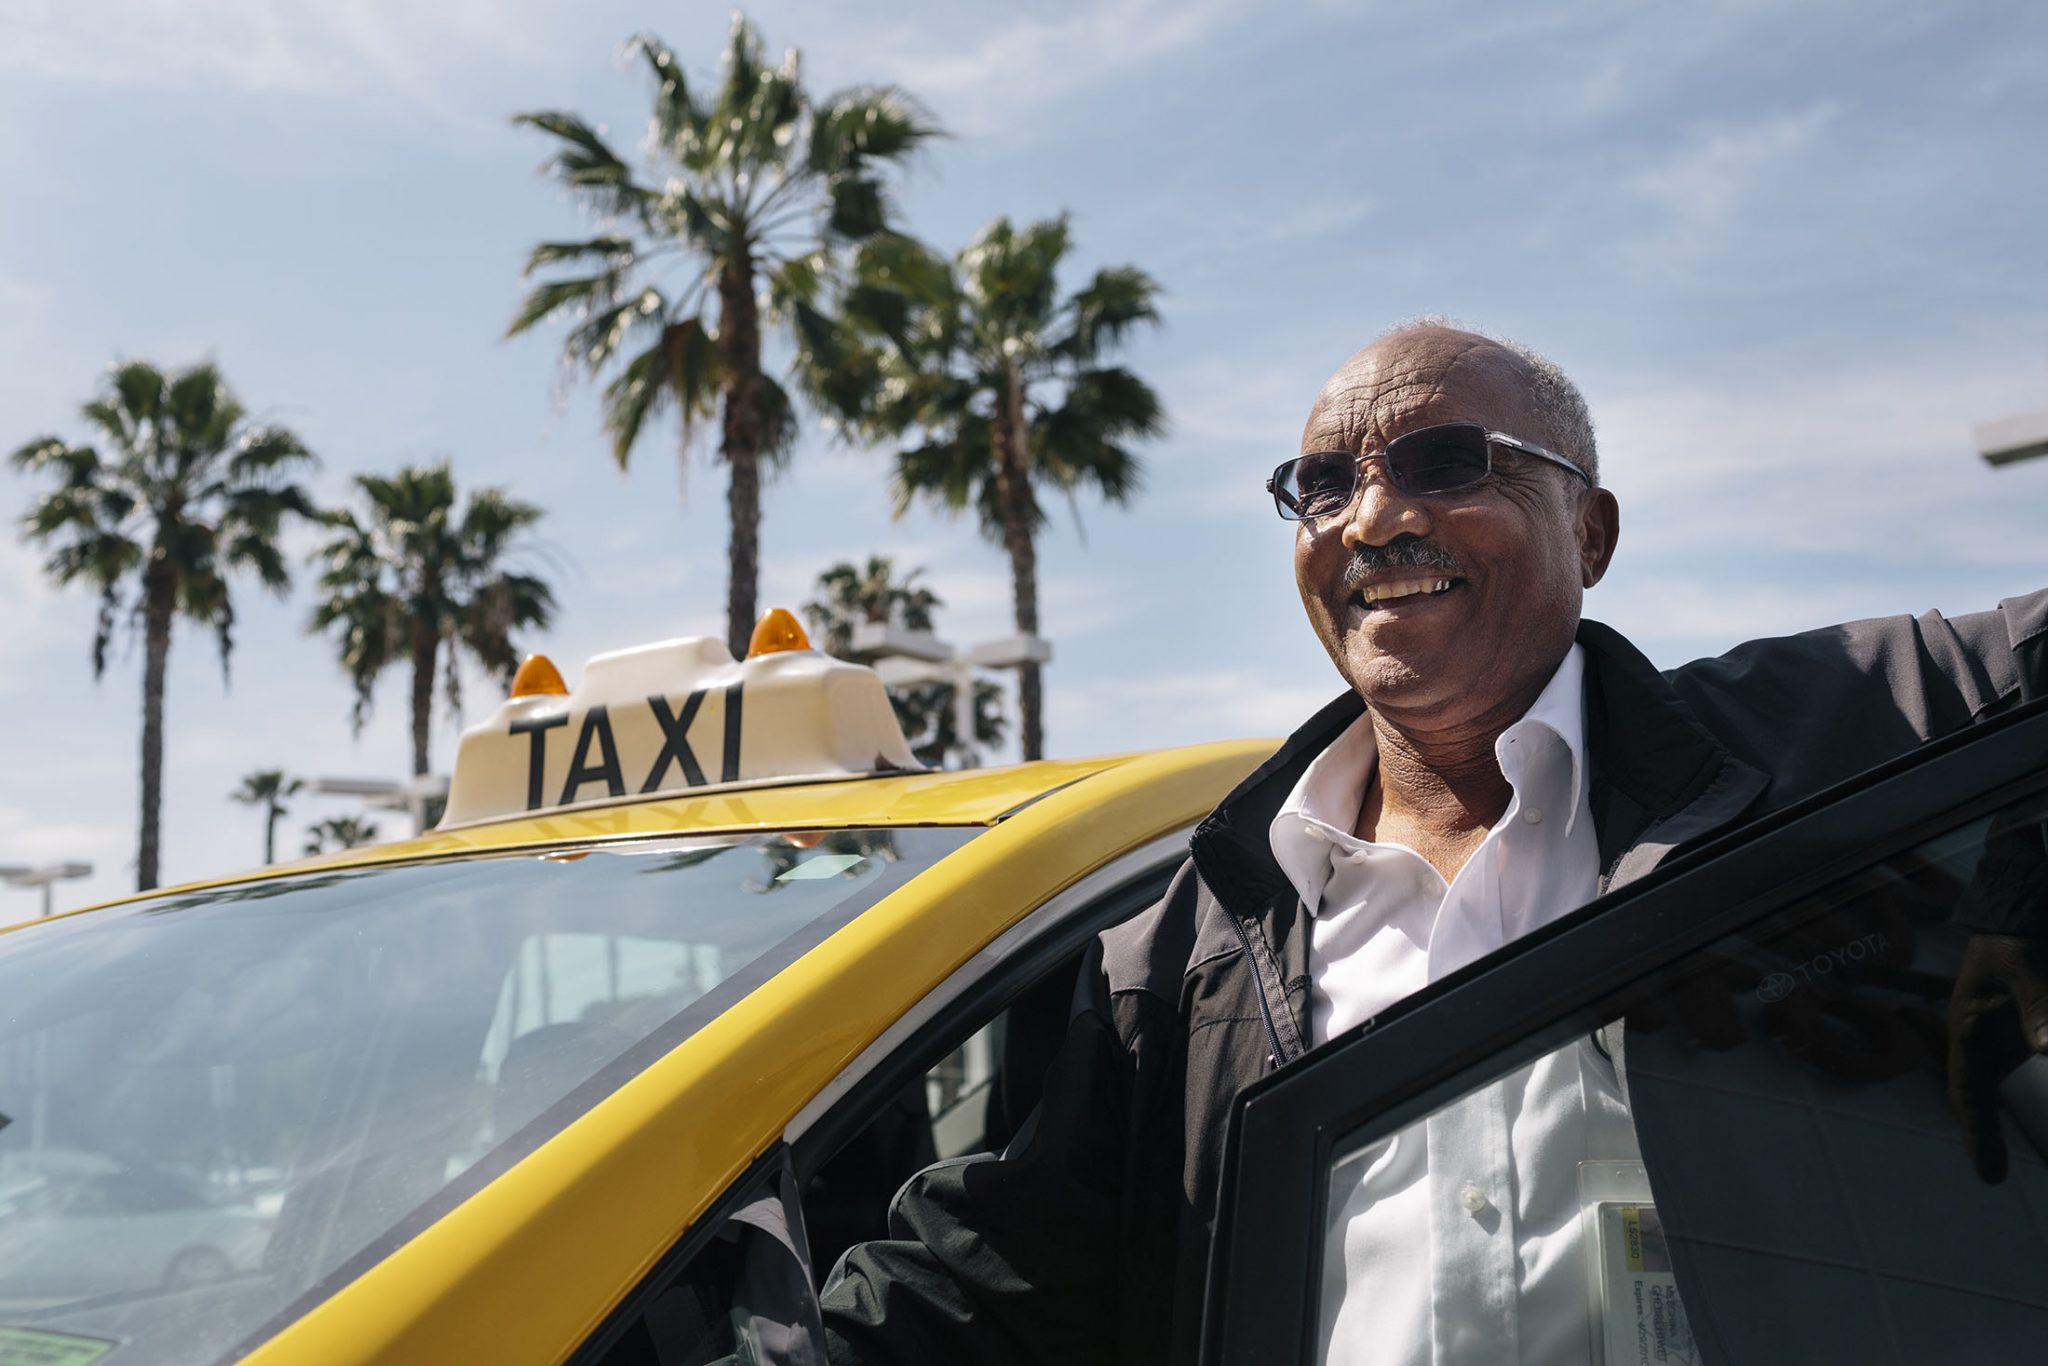 Mesghina Ghebrehiwat, 70, who goes by the name Alex, is the owner of Friendly Cab in San Diego. Ghebrehiwat, originally from Eritrea, has been driving at taxi in San Diego for 14 years and was an early adopter of switching to a hybrid vehicle in 2012 because of incentives offered by Mossy Toyota. Mossy offered the San Diego taxi drivers zero down and low or no interest financing, driver discounts, free carwashes and preferred service if they would switch to driving a Prius.